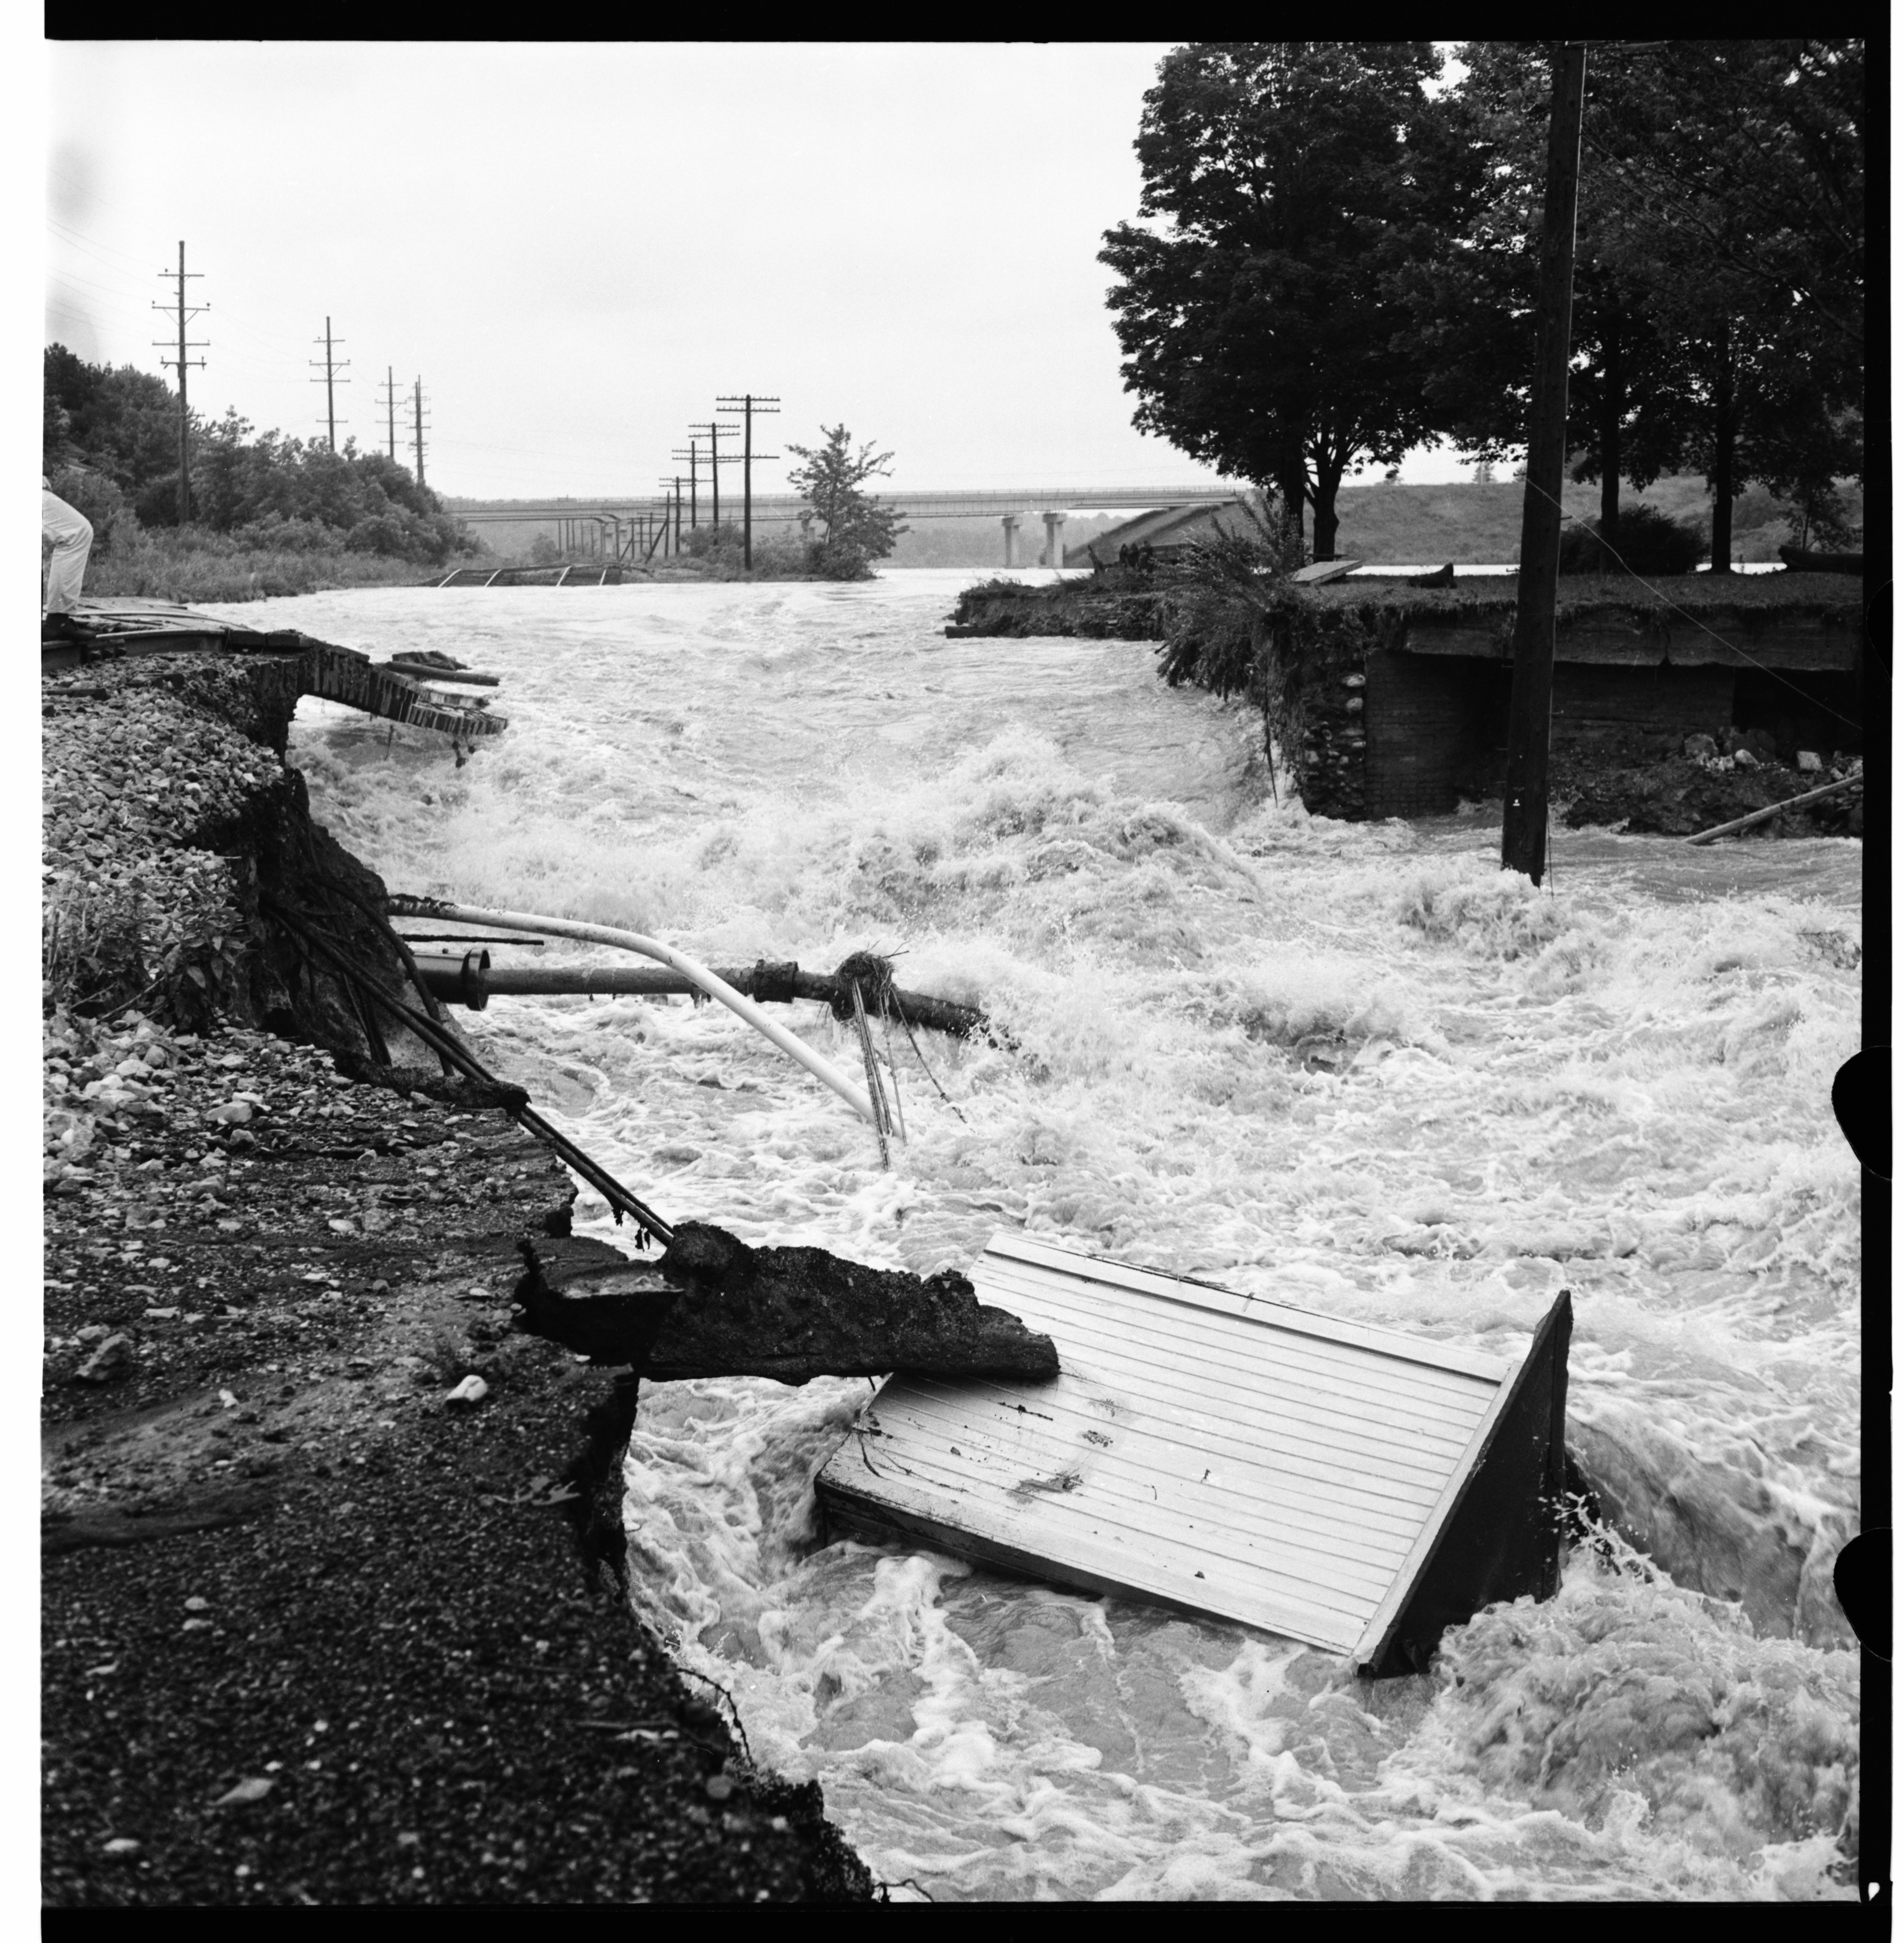 Washed Out Penn-Central Railroad Tracks near Dixboro Rd, June 1968 Flood image